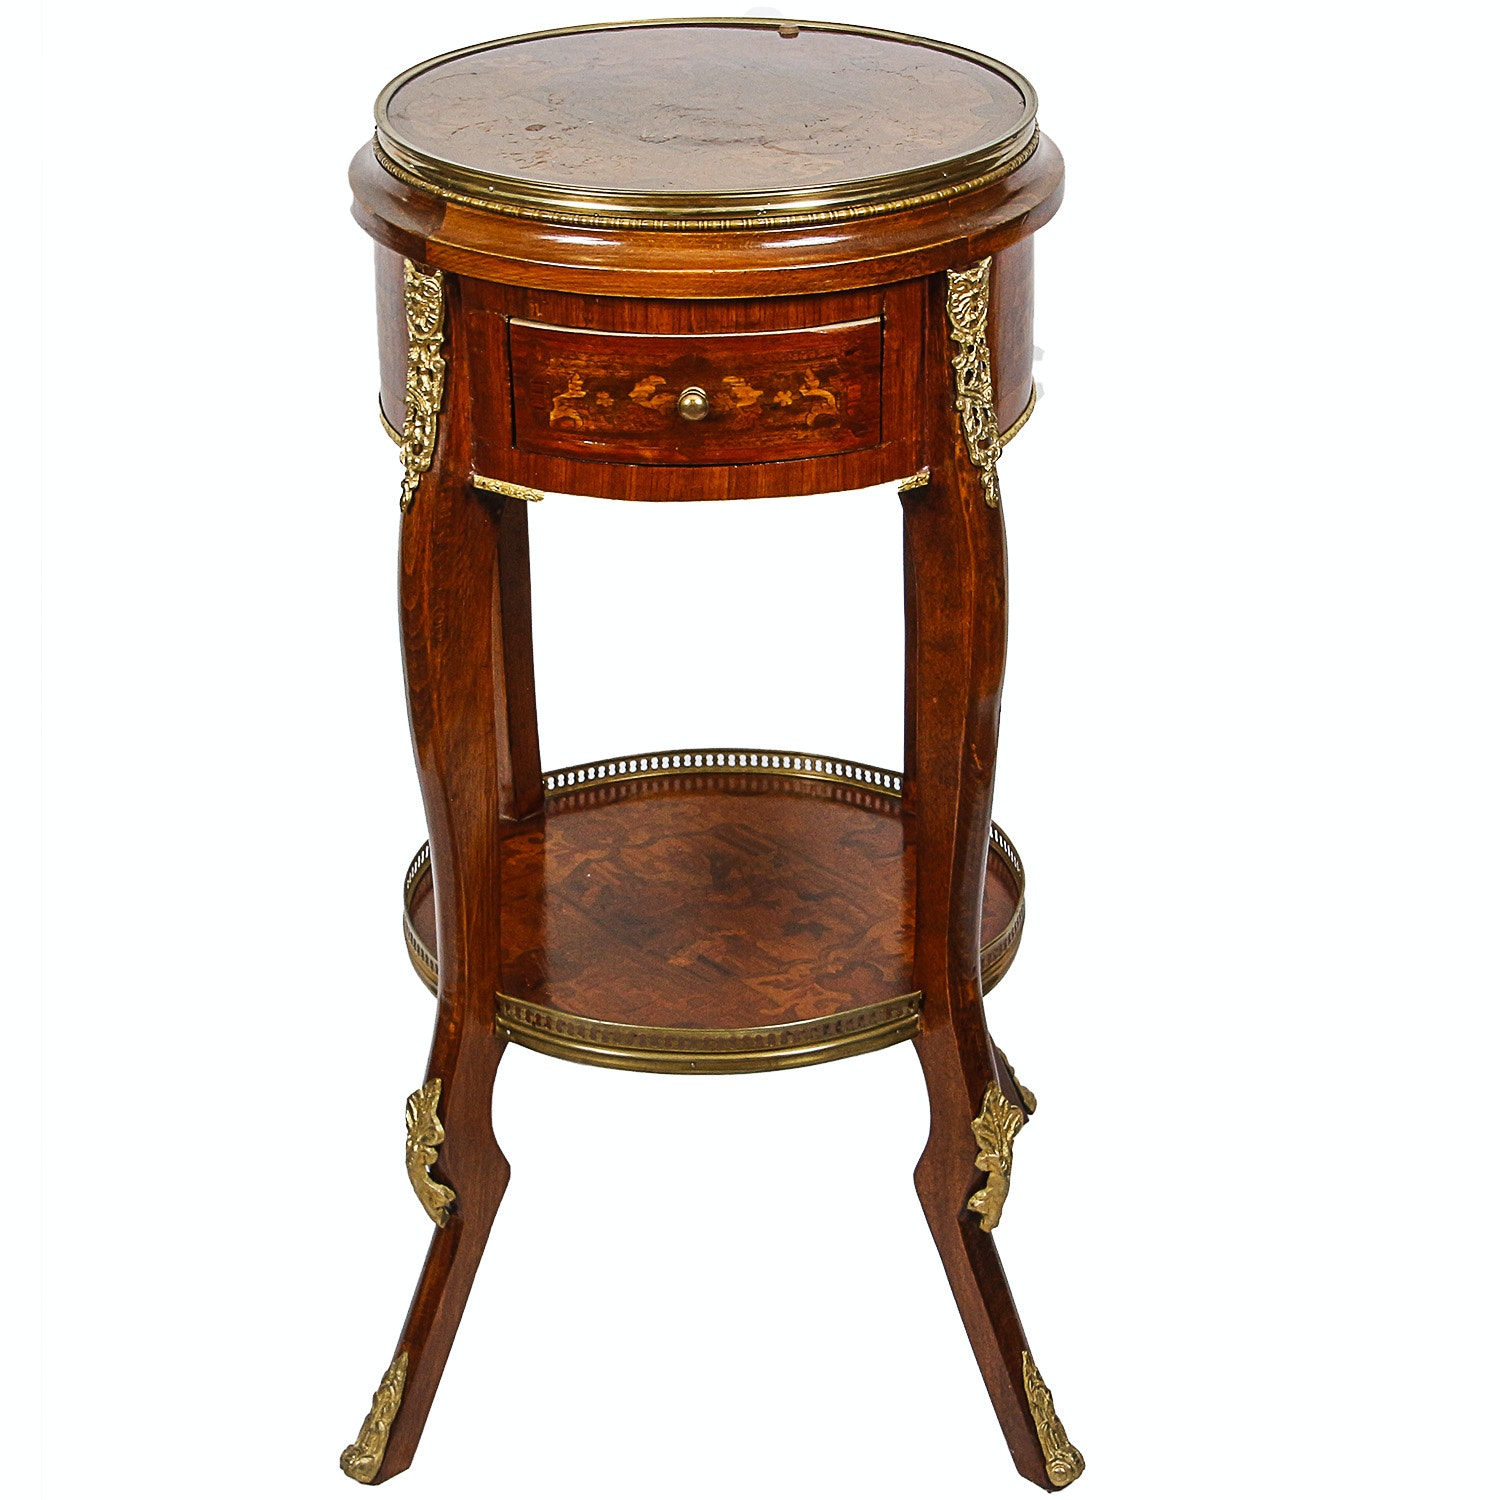 Vintage Louis XVI Style Accent Table with Parquetry Inlay